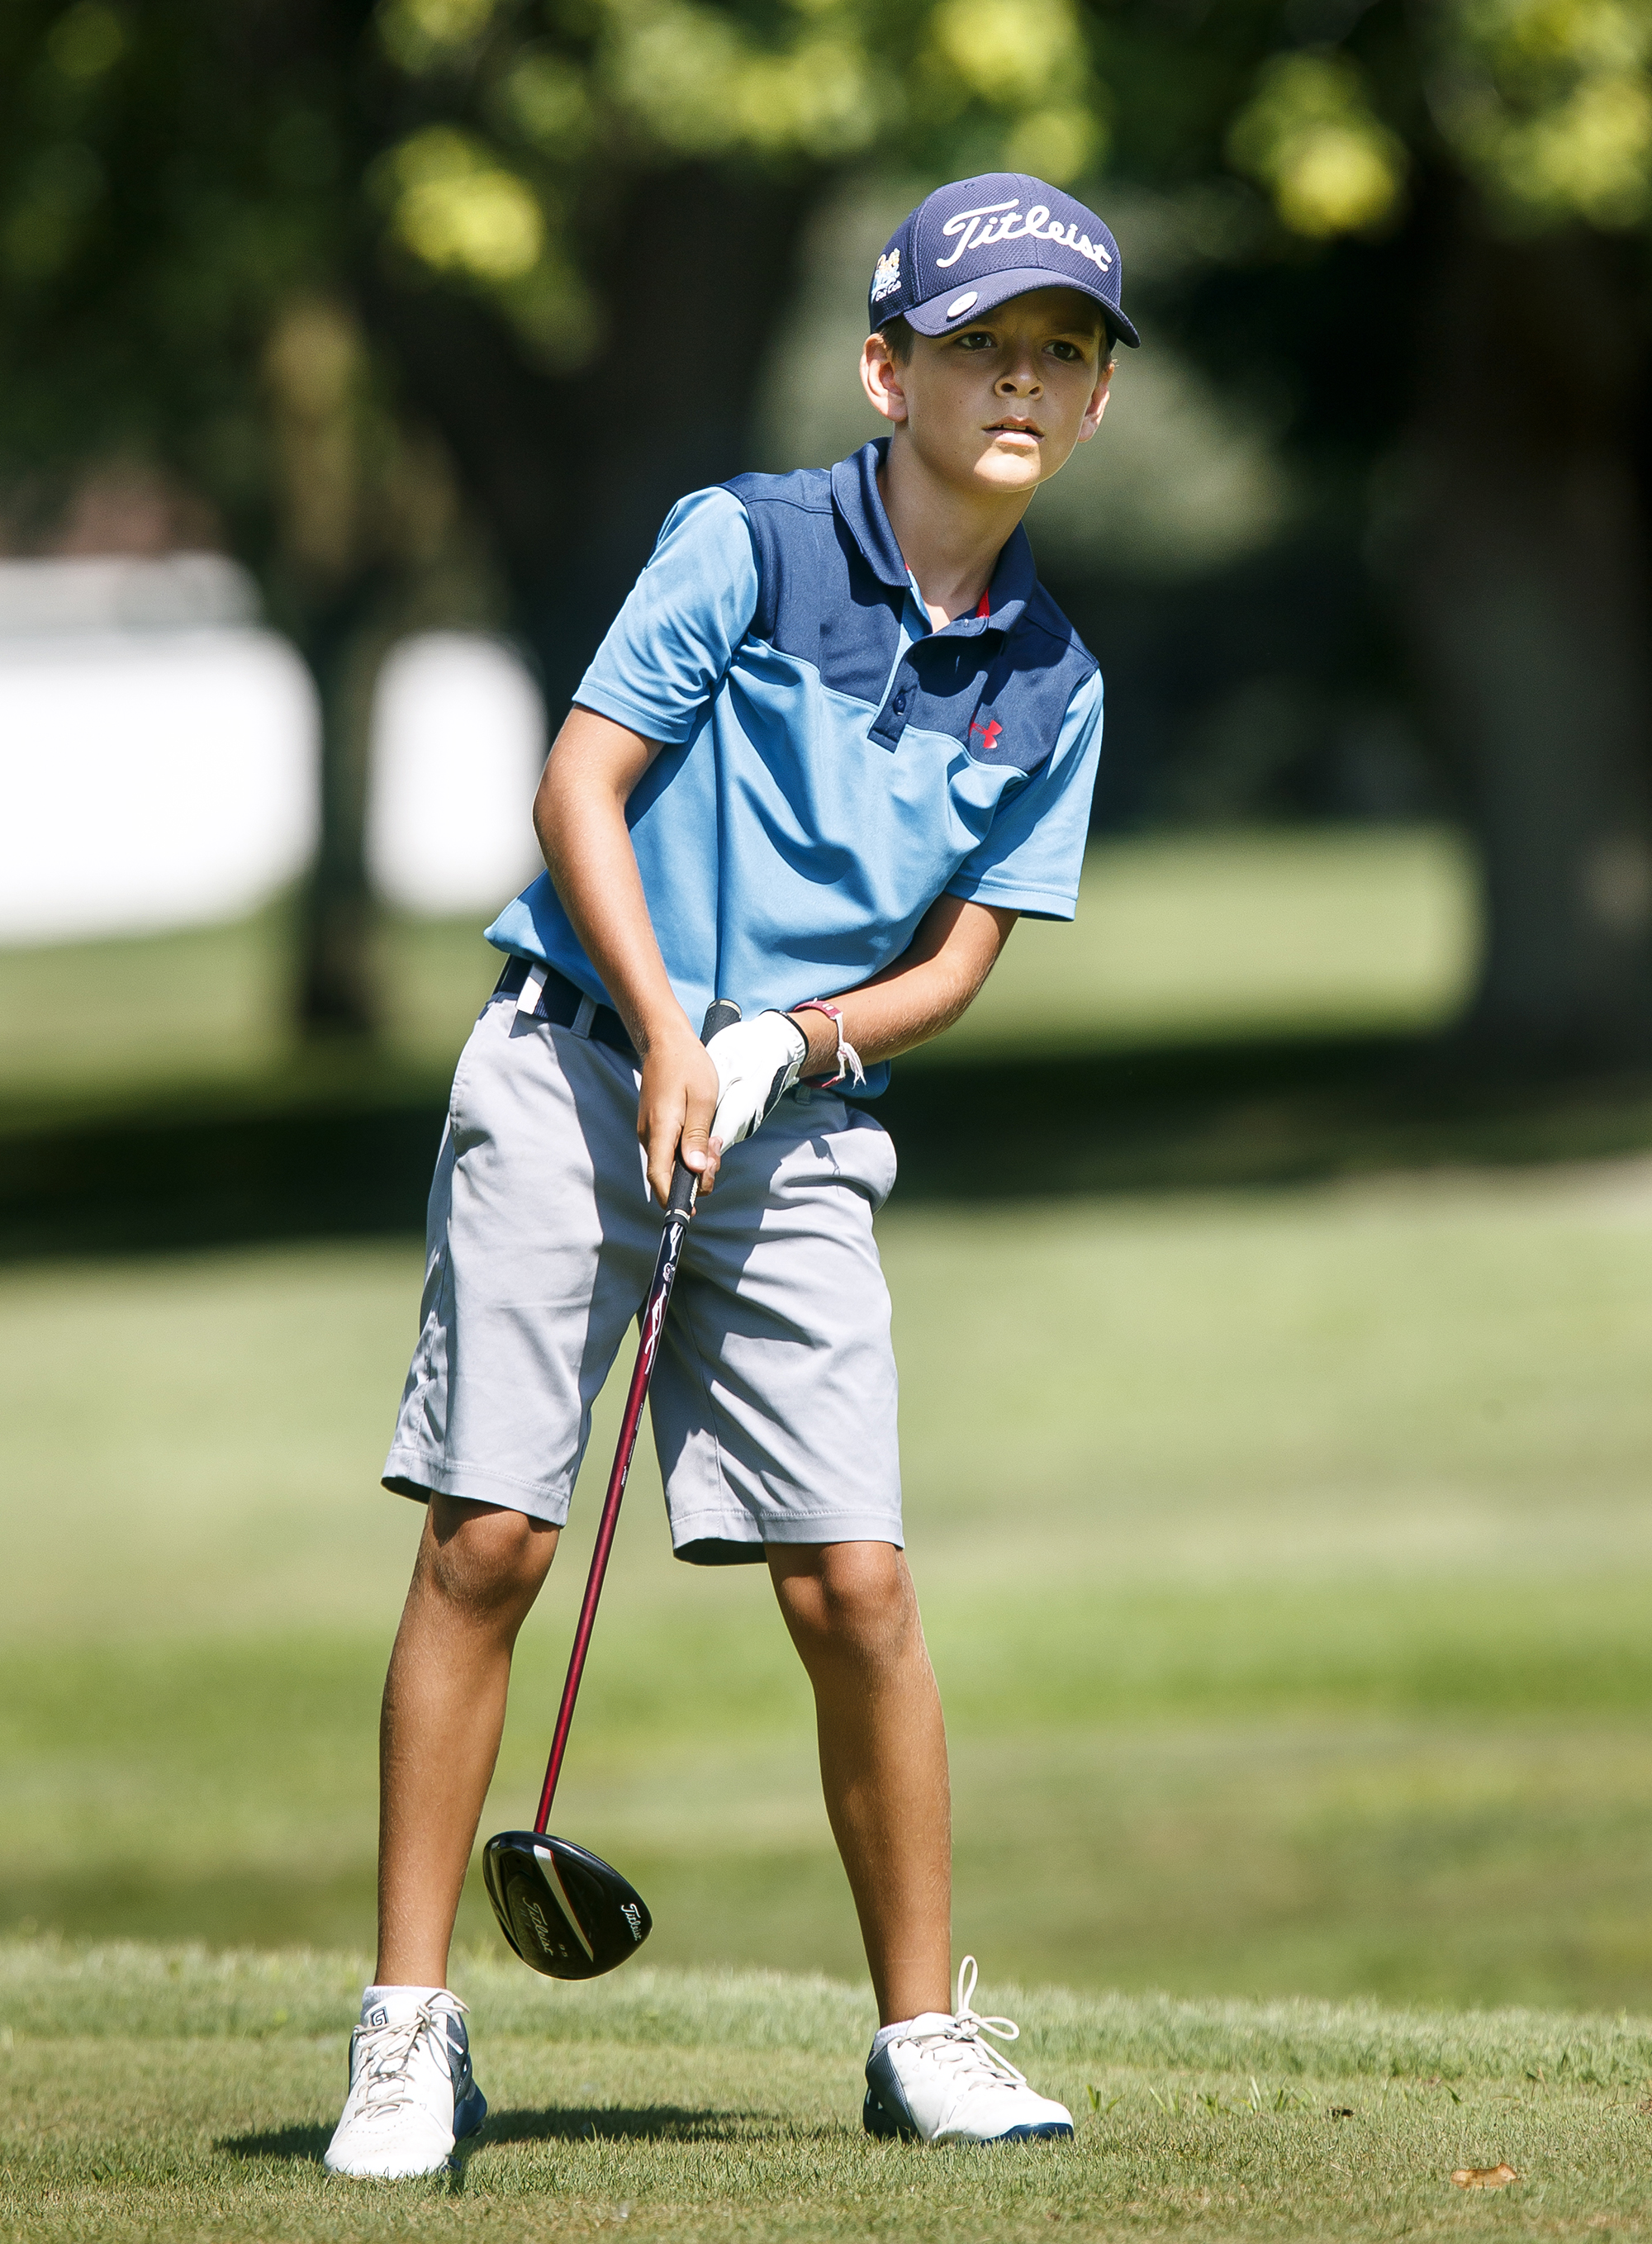 Ryan Suhre watches his drive shot from the No. 1 tee in the boys 11-13 championship flight Thursday, July 12, 2018 in the Drysdale Junior Golf Tournament at Bergen Golf Course in Springfield, Ill. Suhre of Edwardsville defeated Carter Etheridge of Springfield. [Rich Saal/The State Journal-Register]